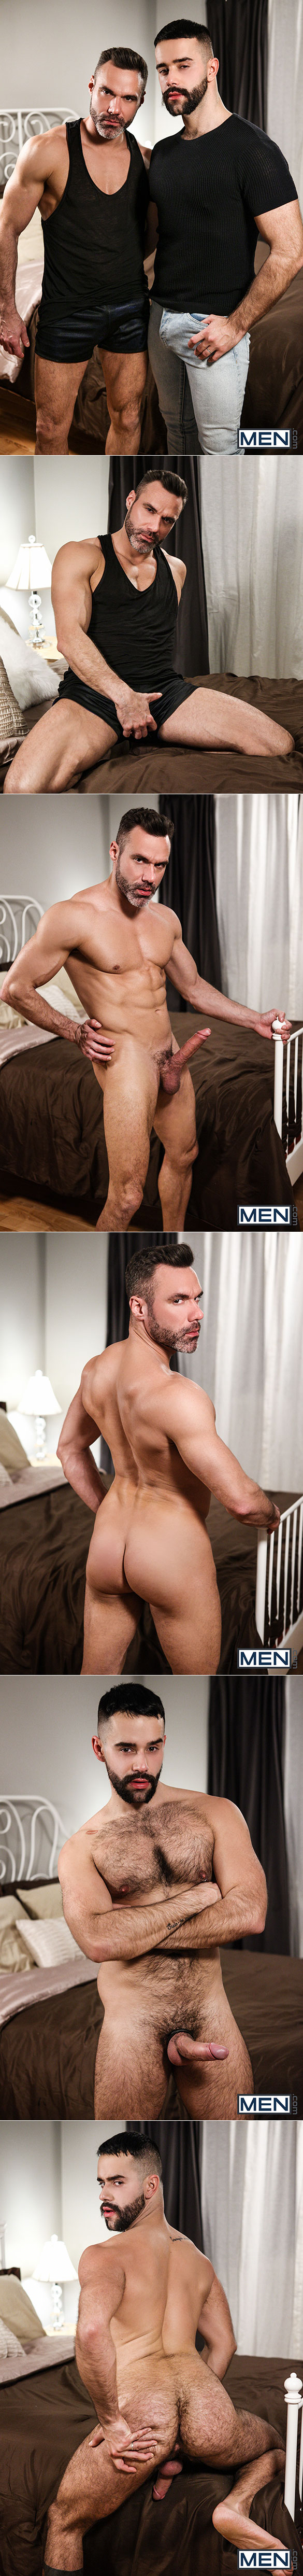 "Men.com: Manuel Skye pounds Teddy Torres in ""Undercover Stripper, Part 3"""